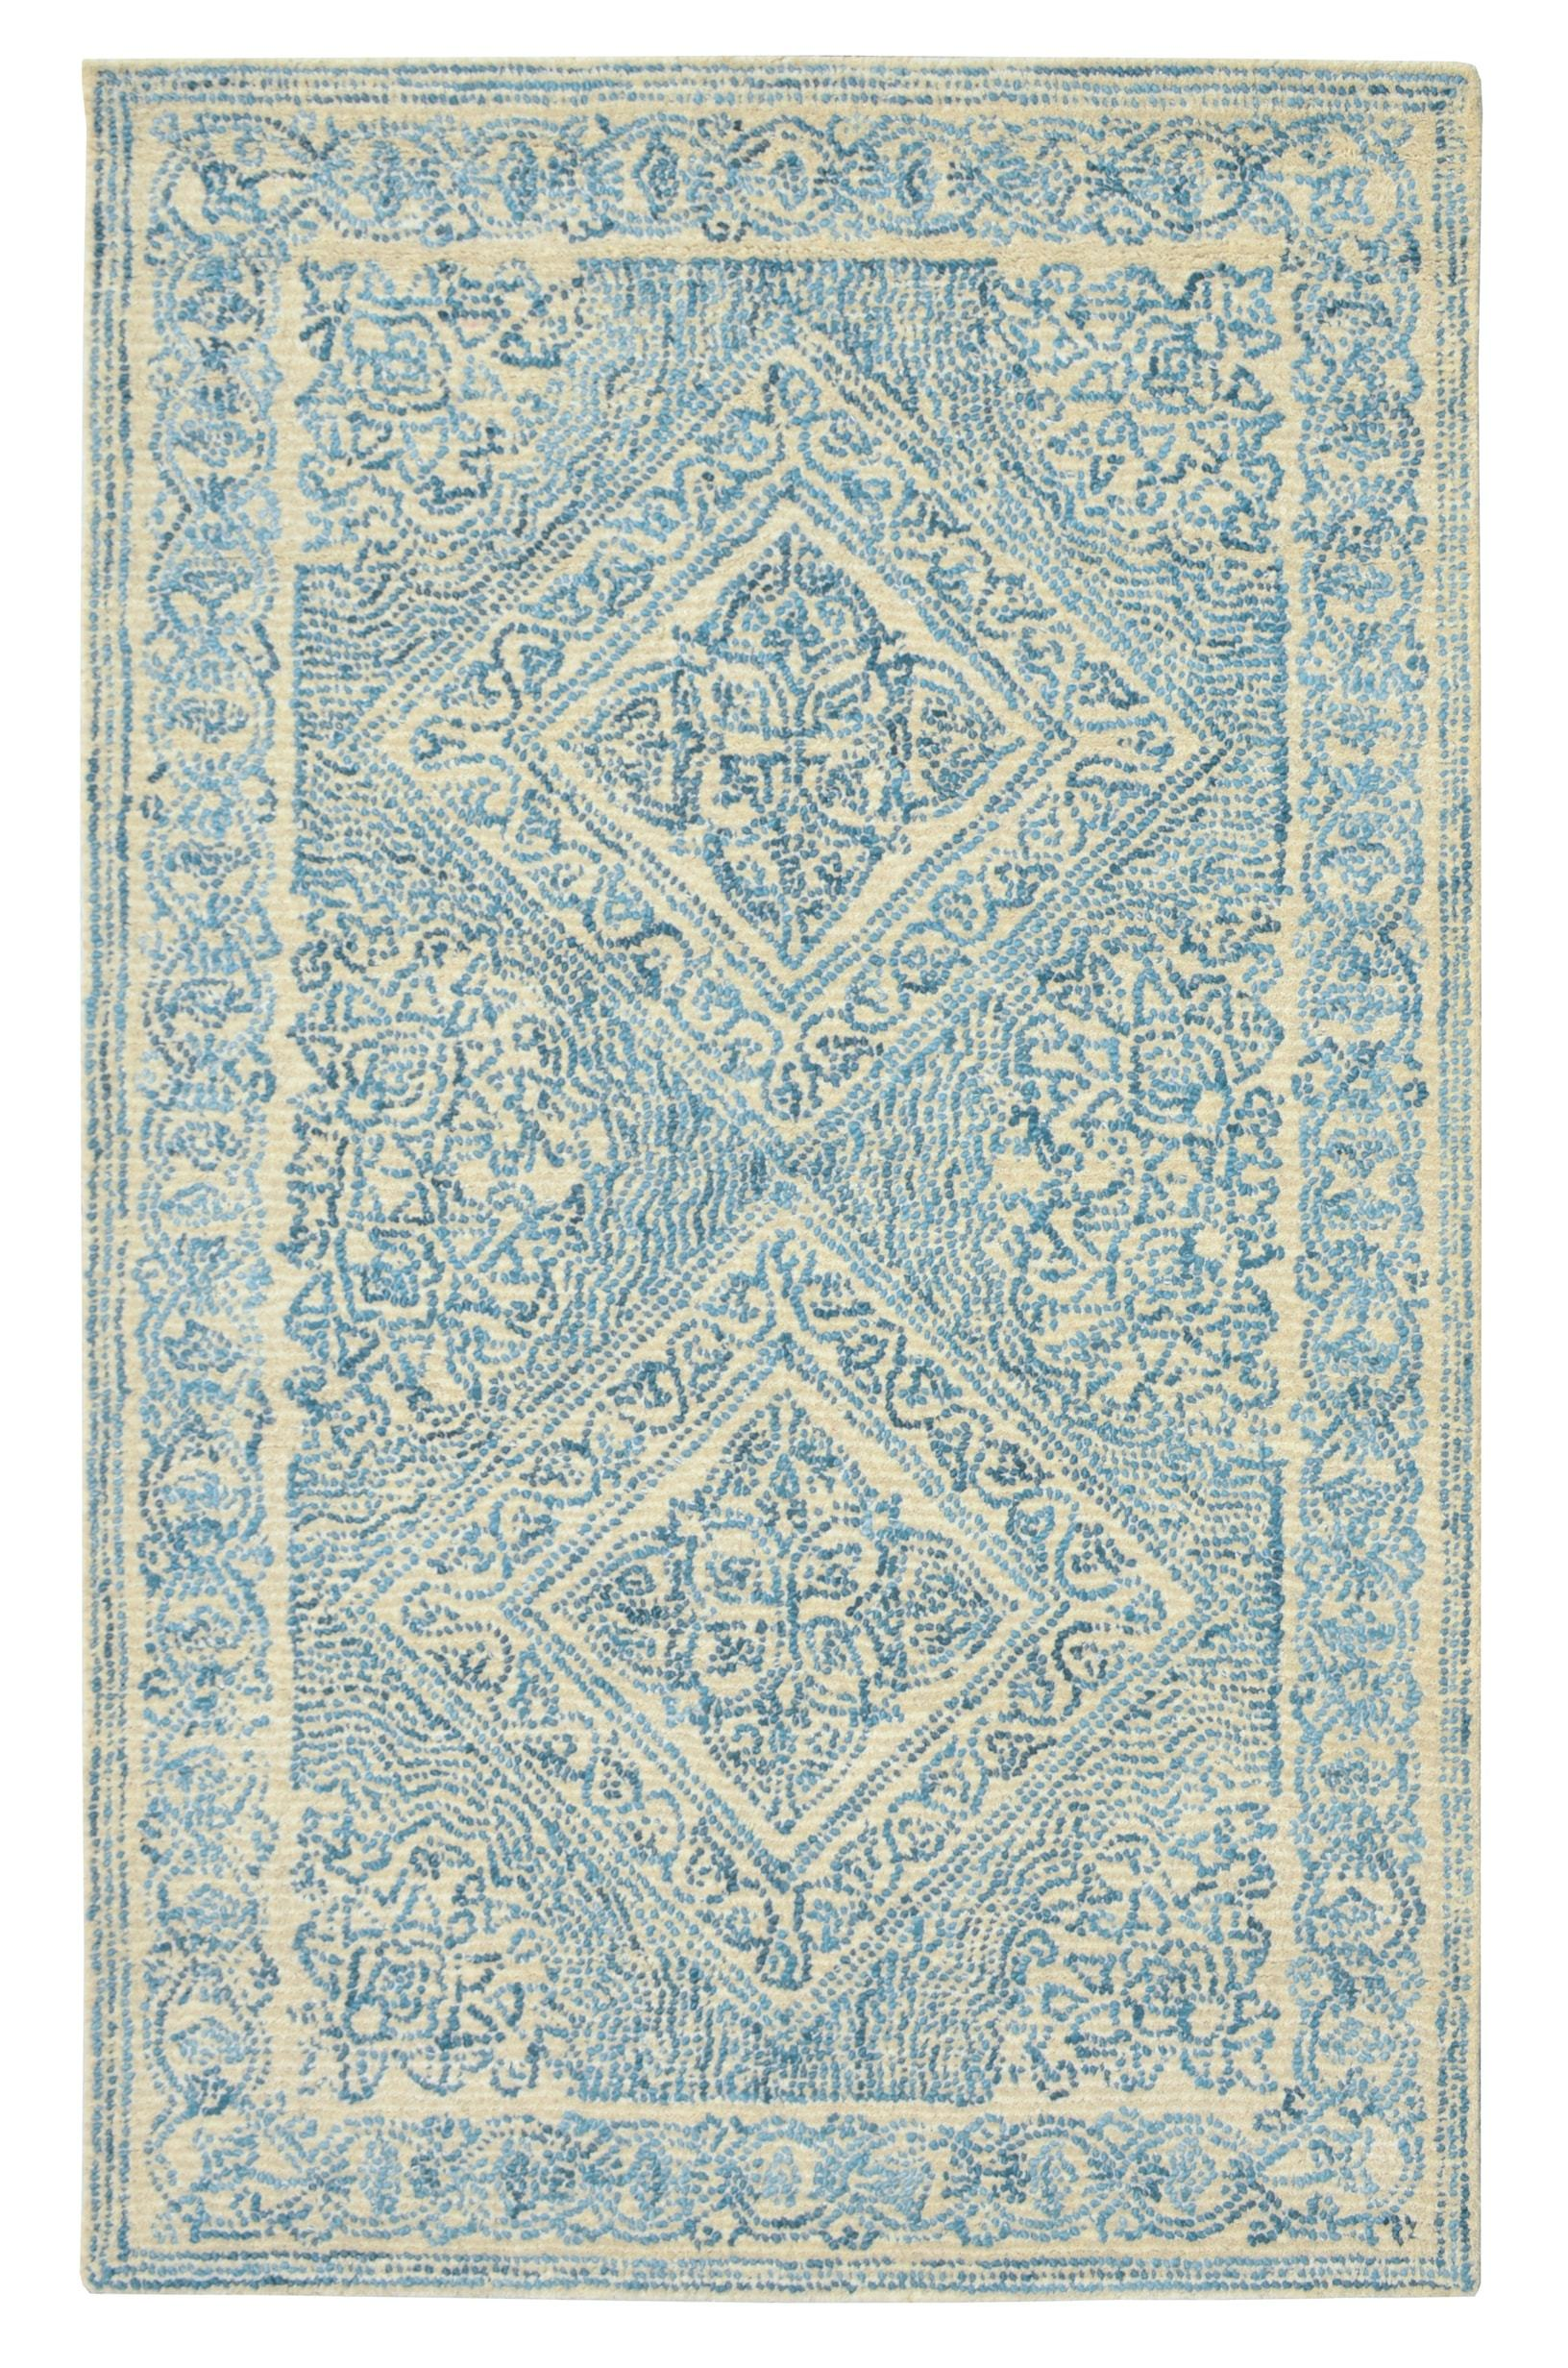 Irenaeus Hand Tufted Rug by House of Rugs - Home Artisan